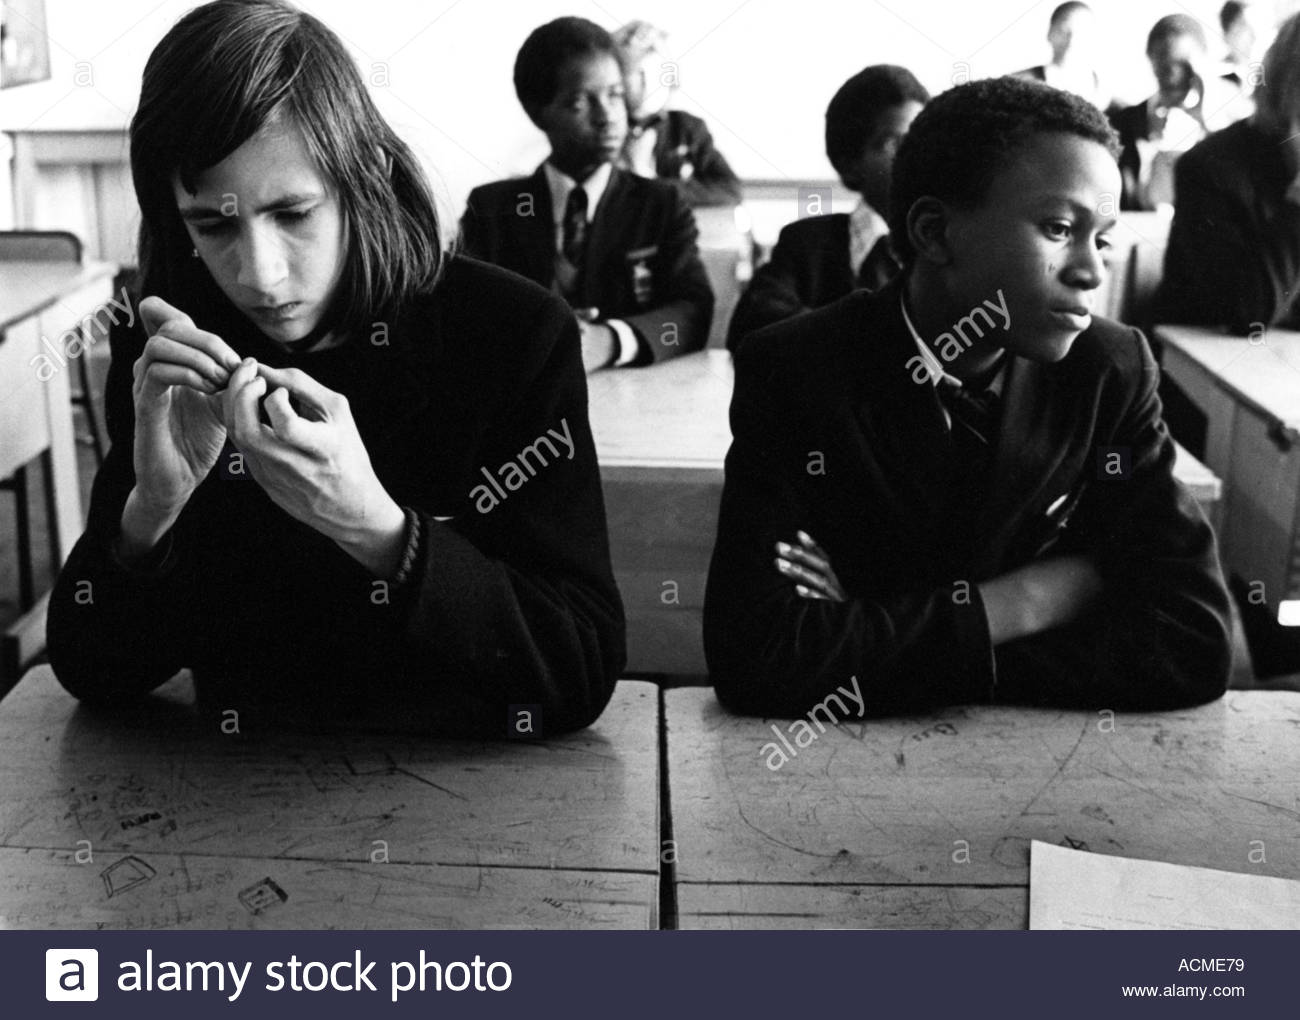 Secondary school pupils sitting in class looking tense but bored - Stock Image